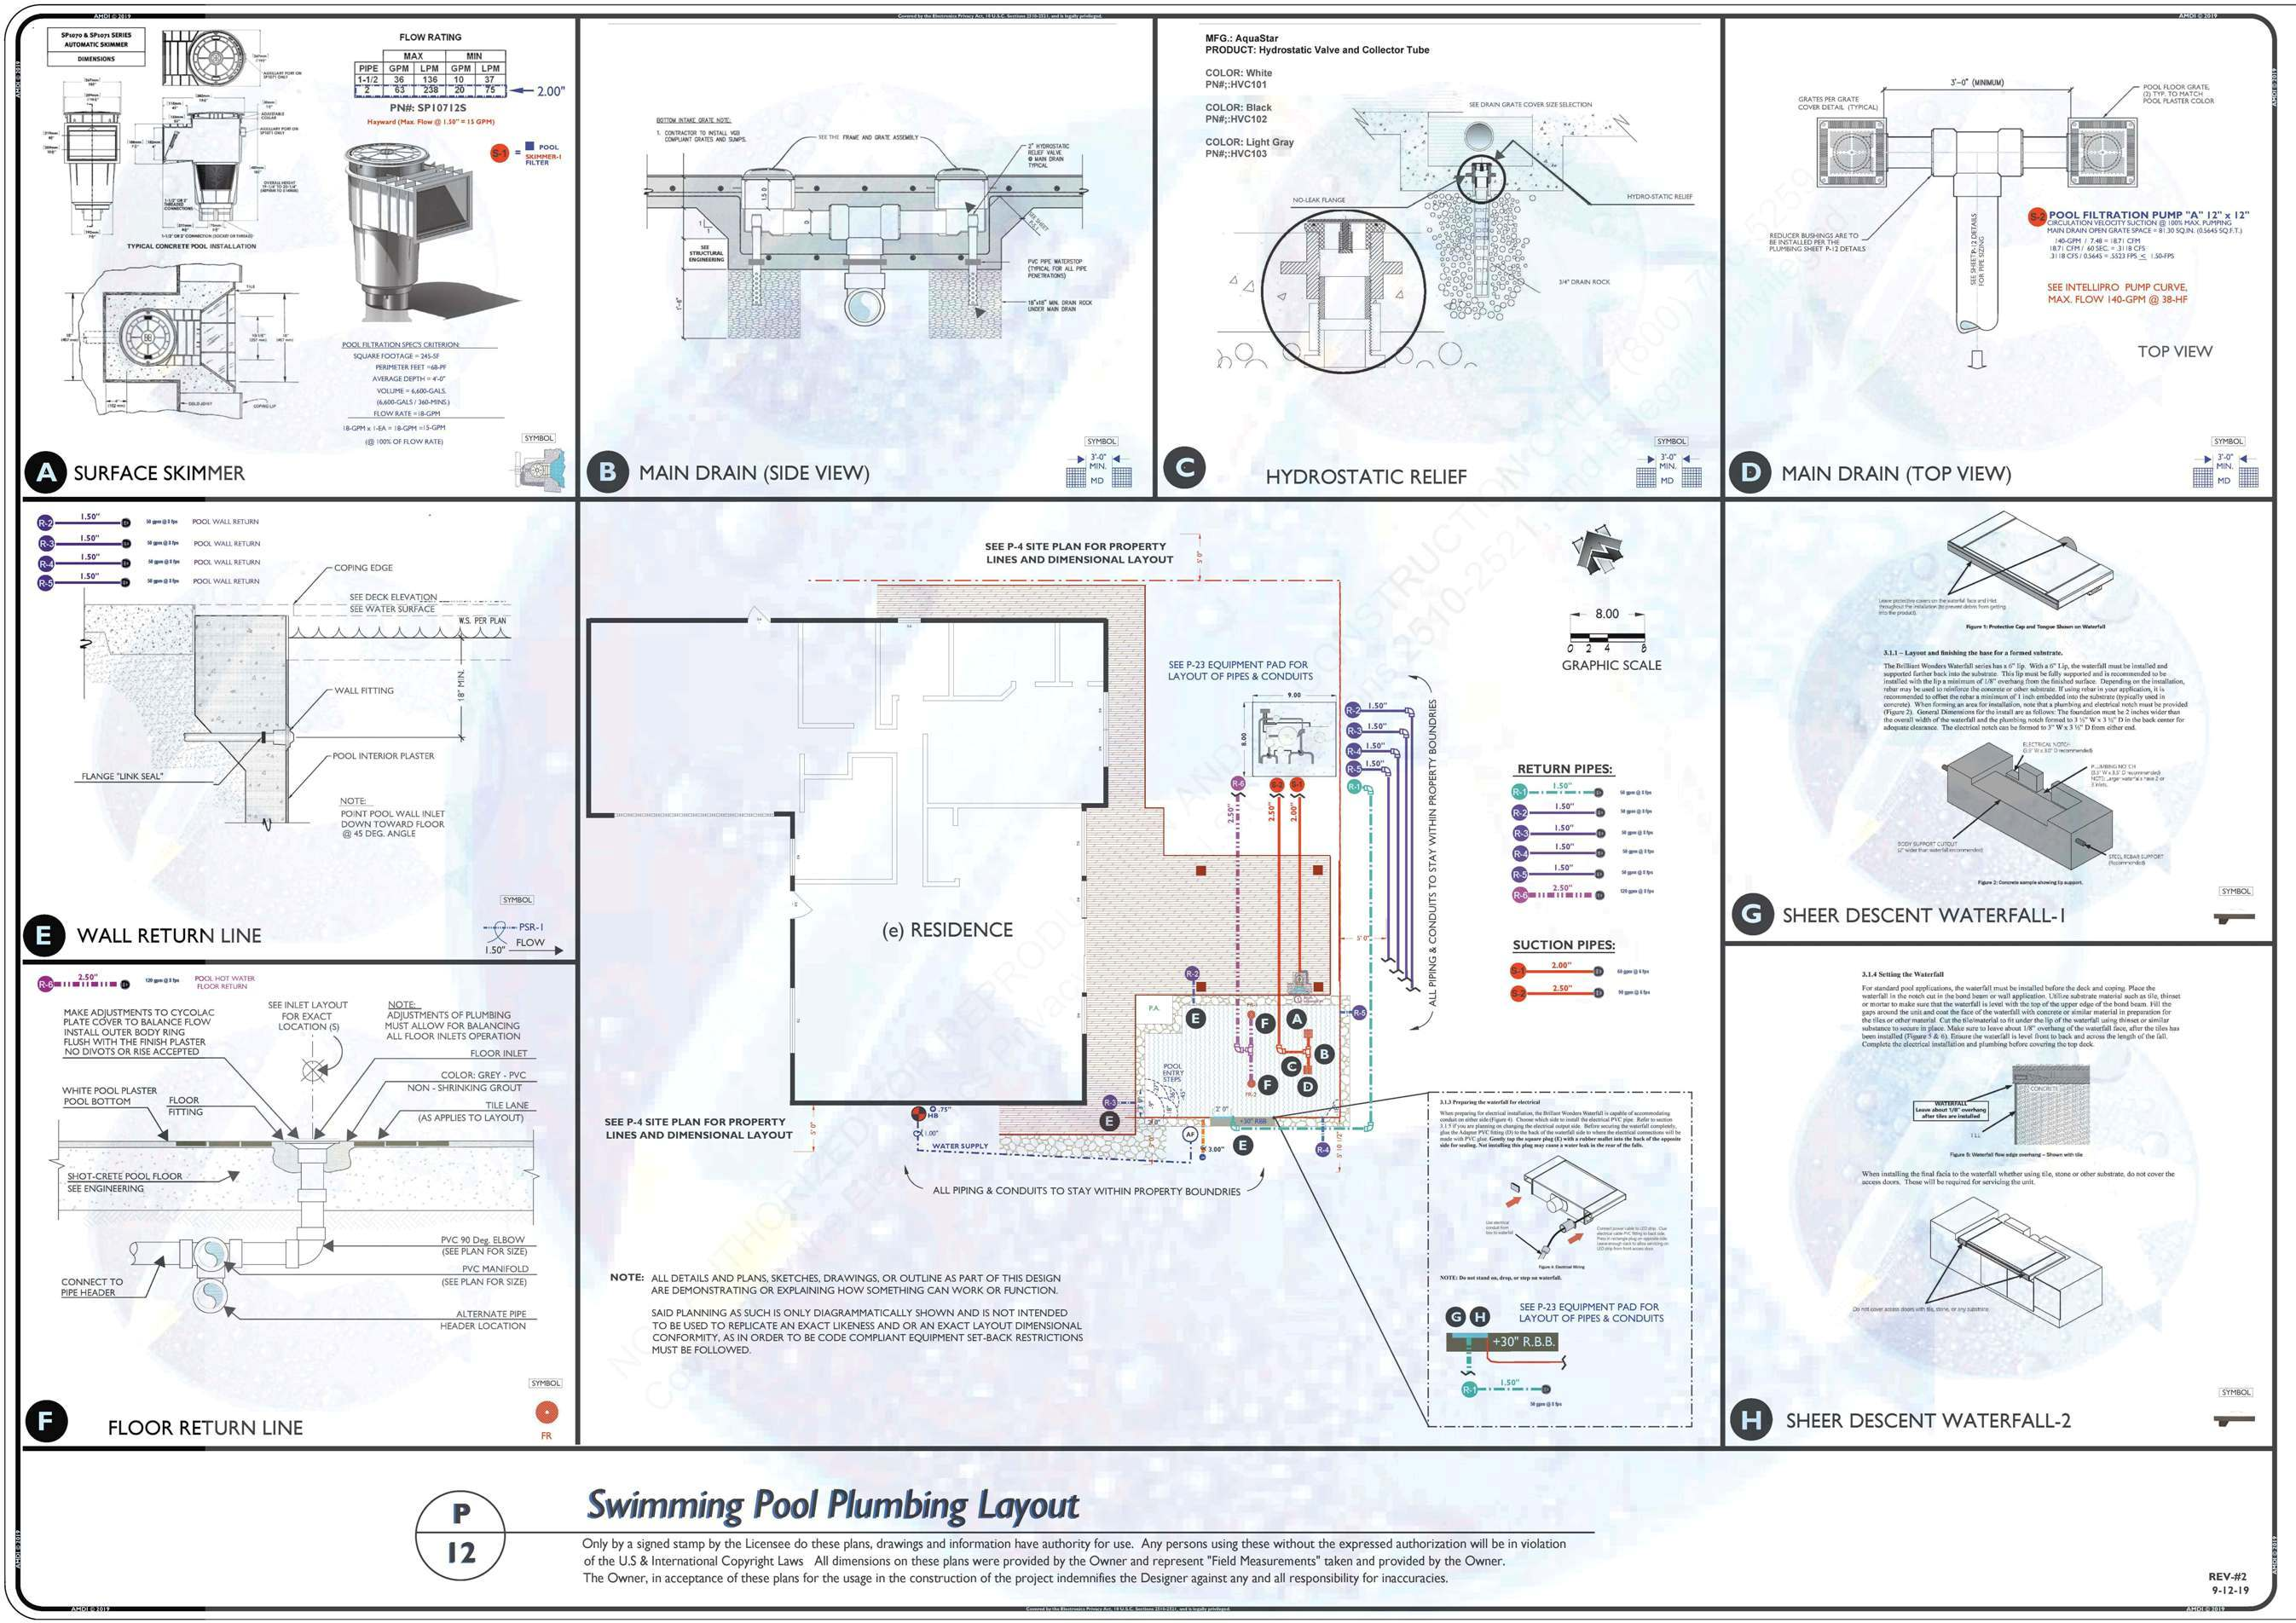 P-12 POOL AND SPA PLUMBING LAYOUT REV-2